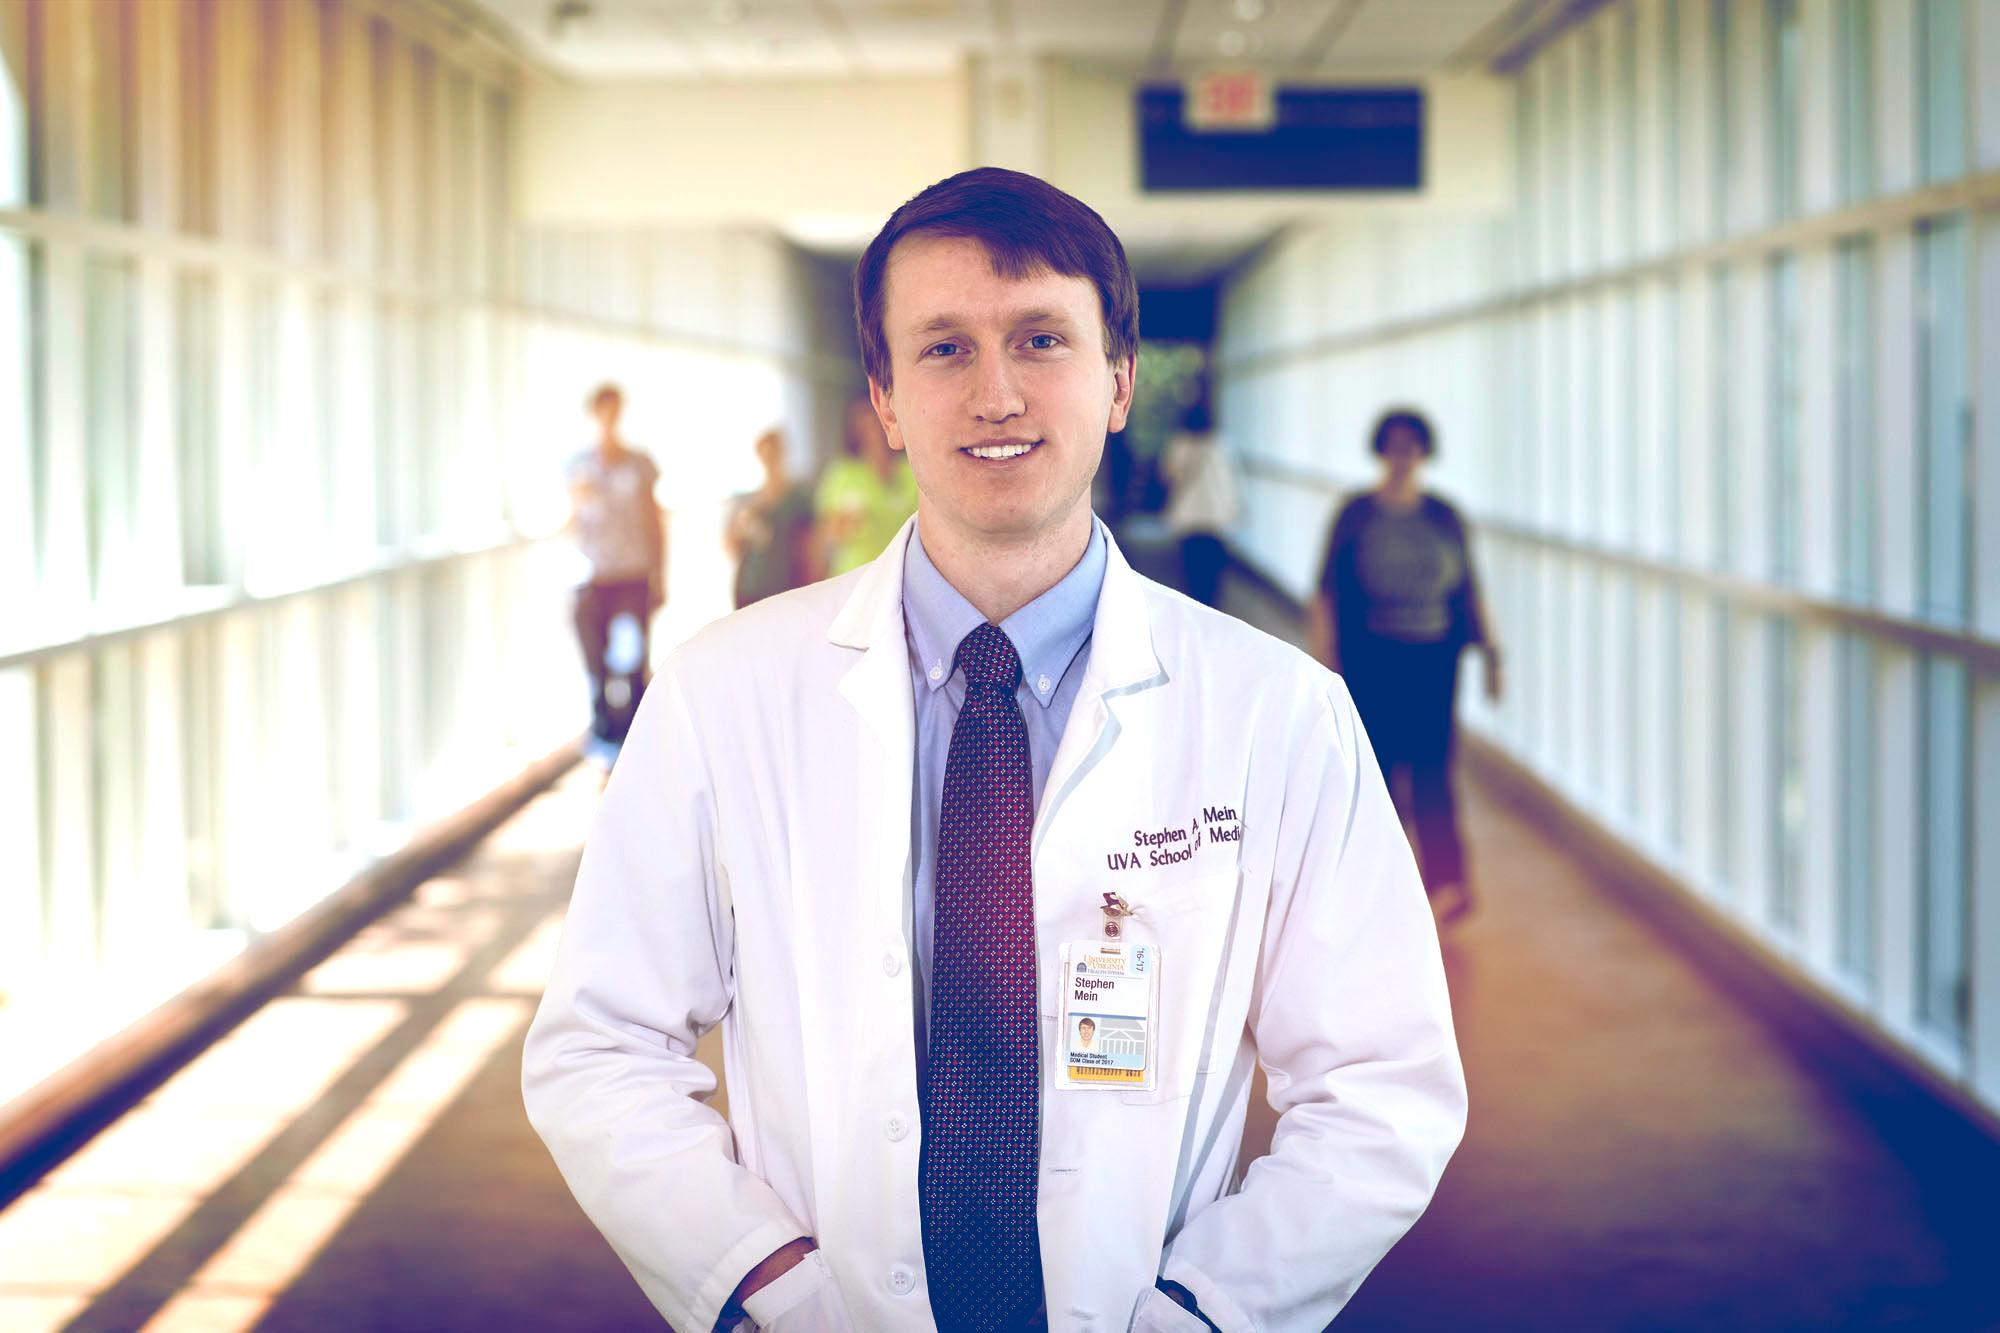 After graduation, medical student Stephen Mein will pursue a career in primary care, beginning with a residency in Boston.